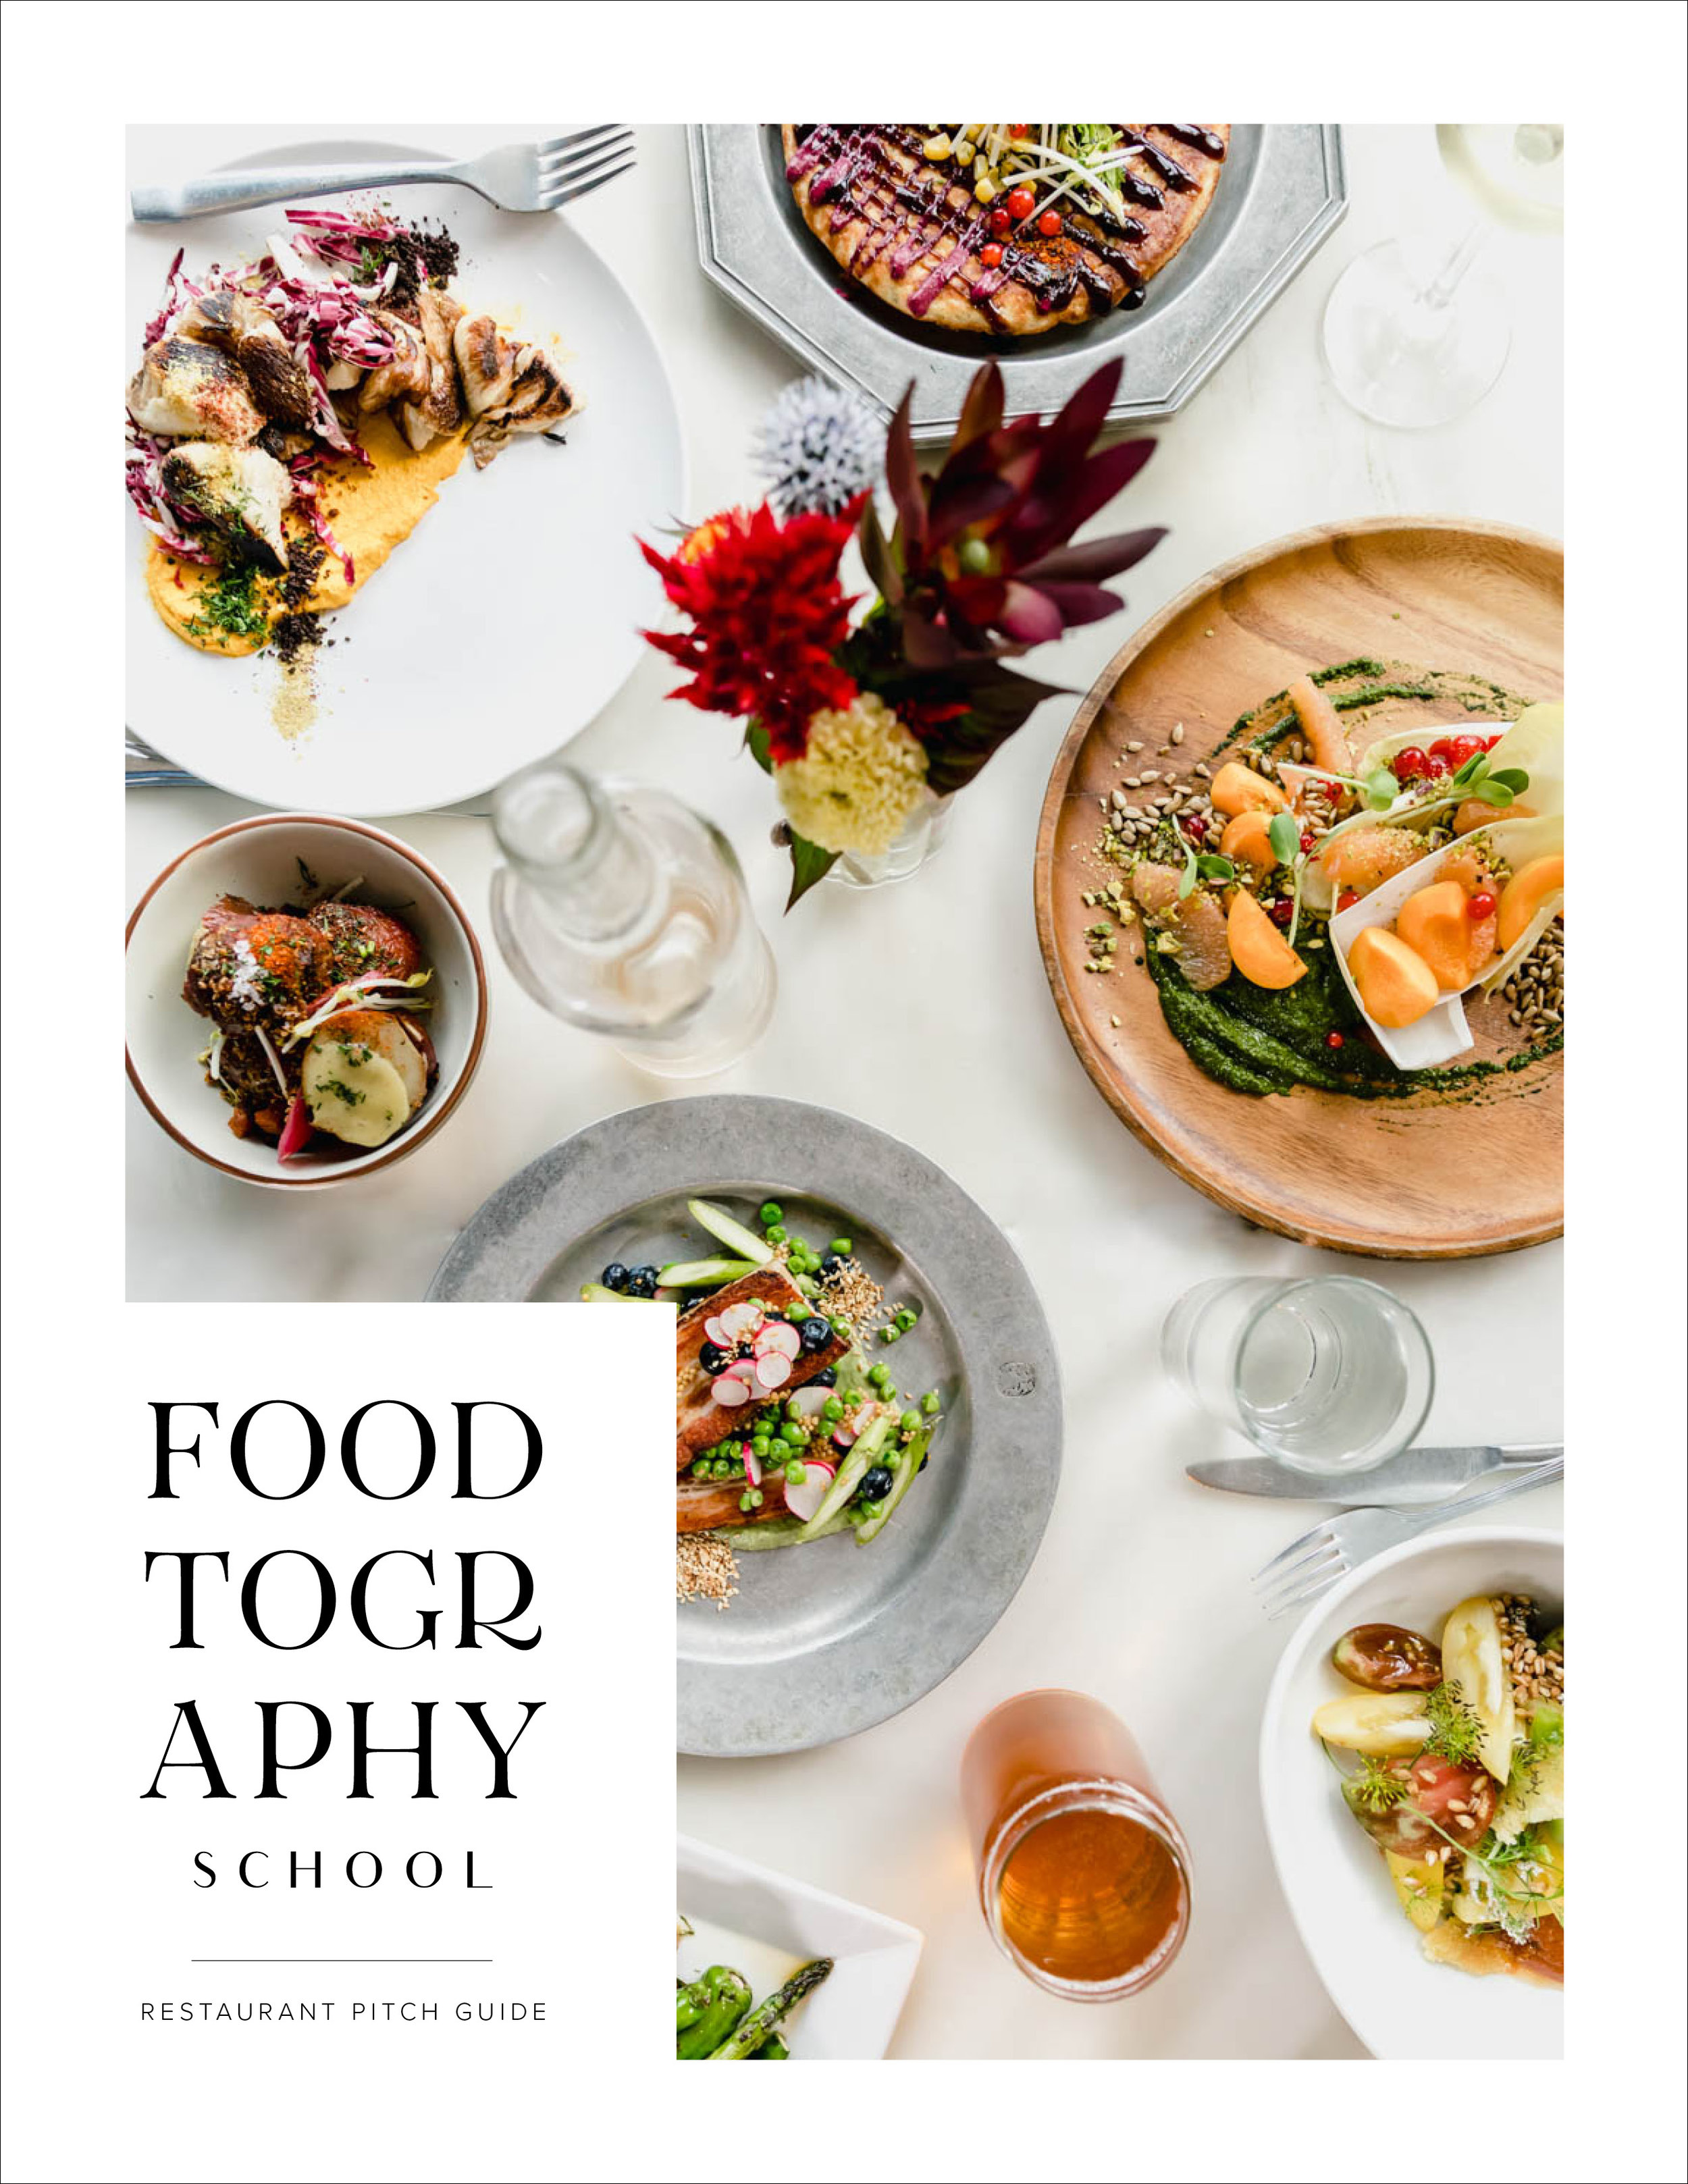 Broma Bakery Foodtography School — Restaurant Pitch Guide — Design  Photography: Broma Bakery, Sarah Fennel